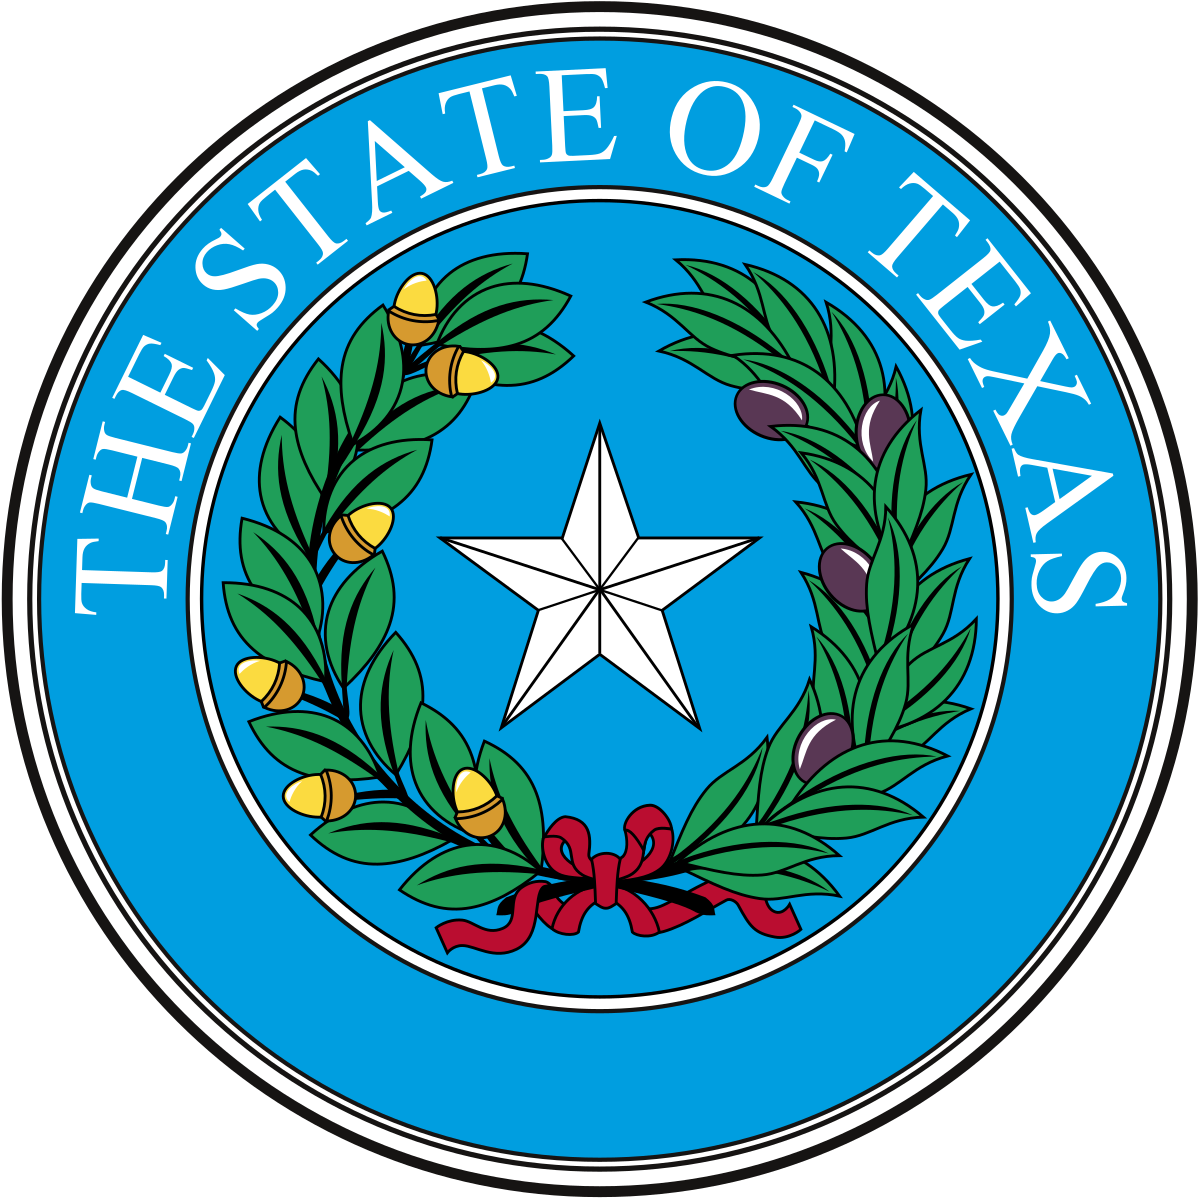 1200x1200 Seal Of Texas